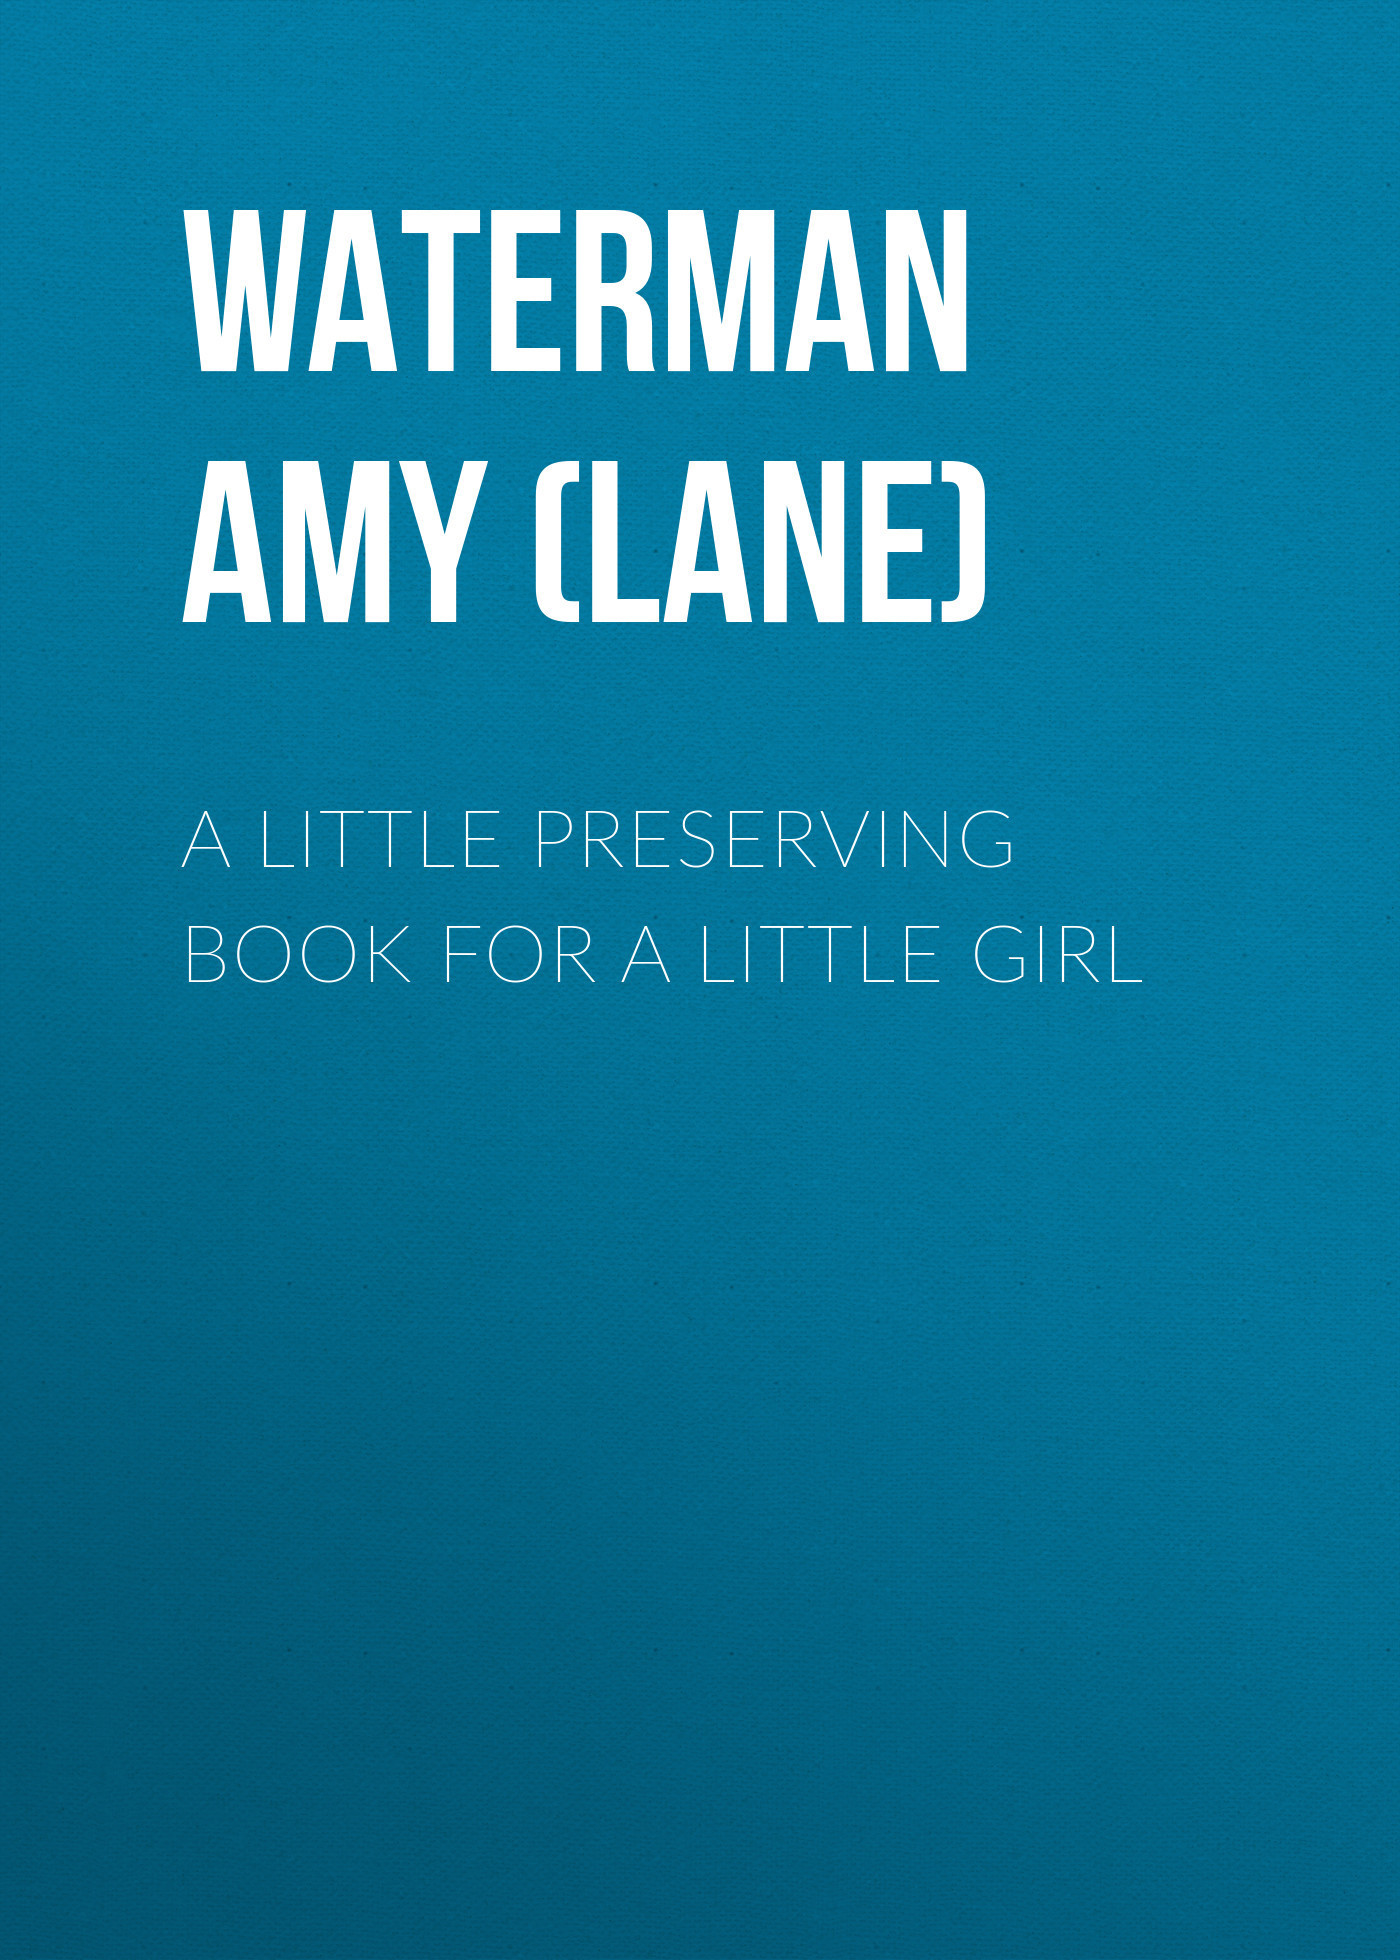 Waterman Amy Harlow (Lane) A Little Preserving Book for a Little Girl babar s little girl